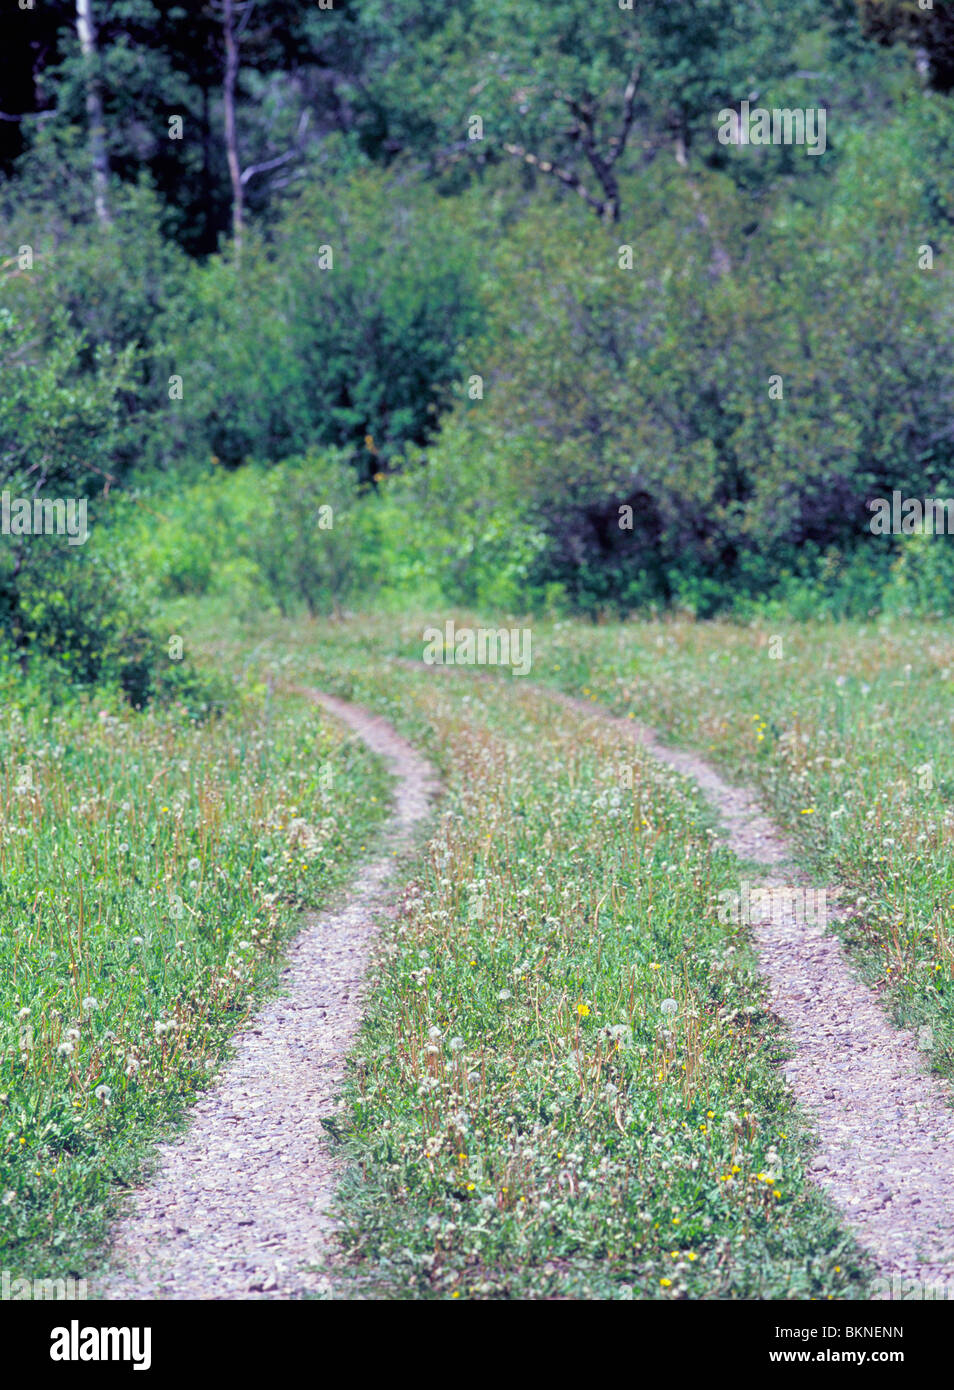 two lane rutted gravel road cutting through green grass park county